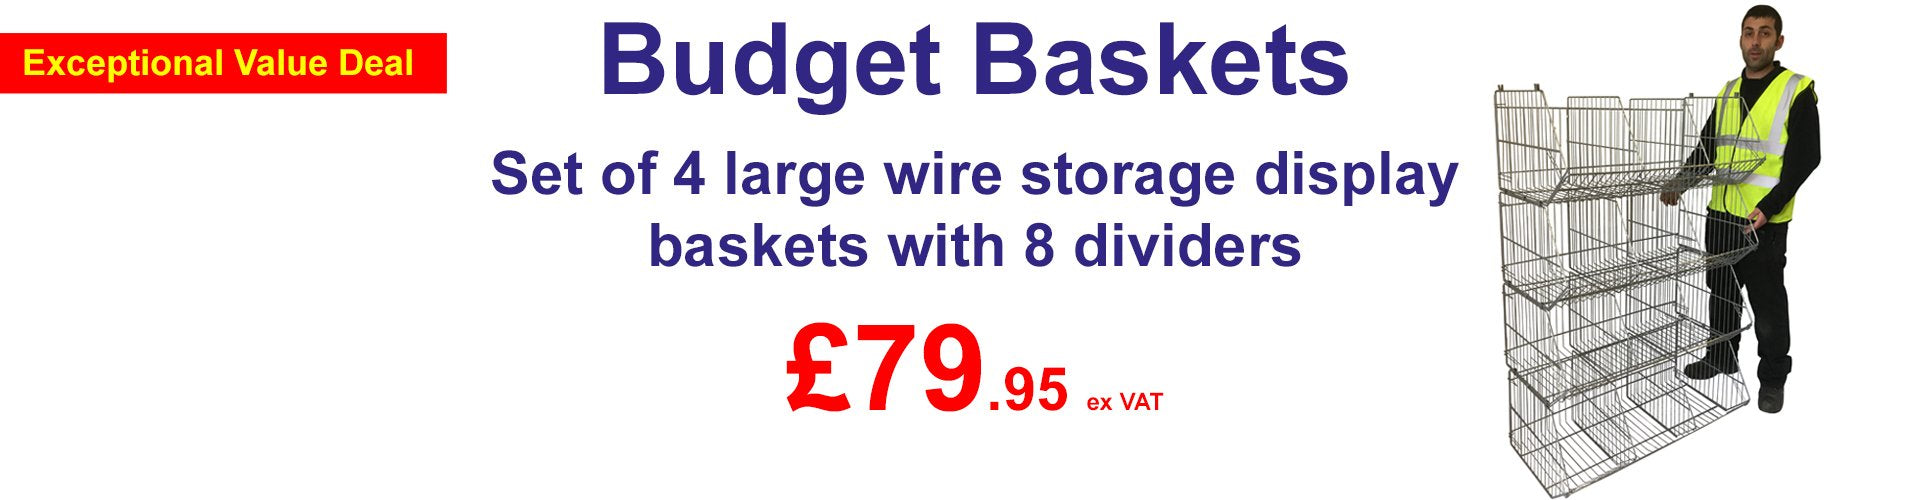 Value Deal: Budget Baskets